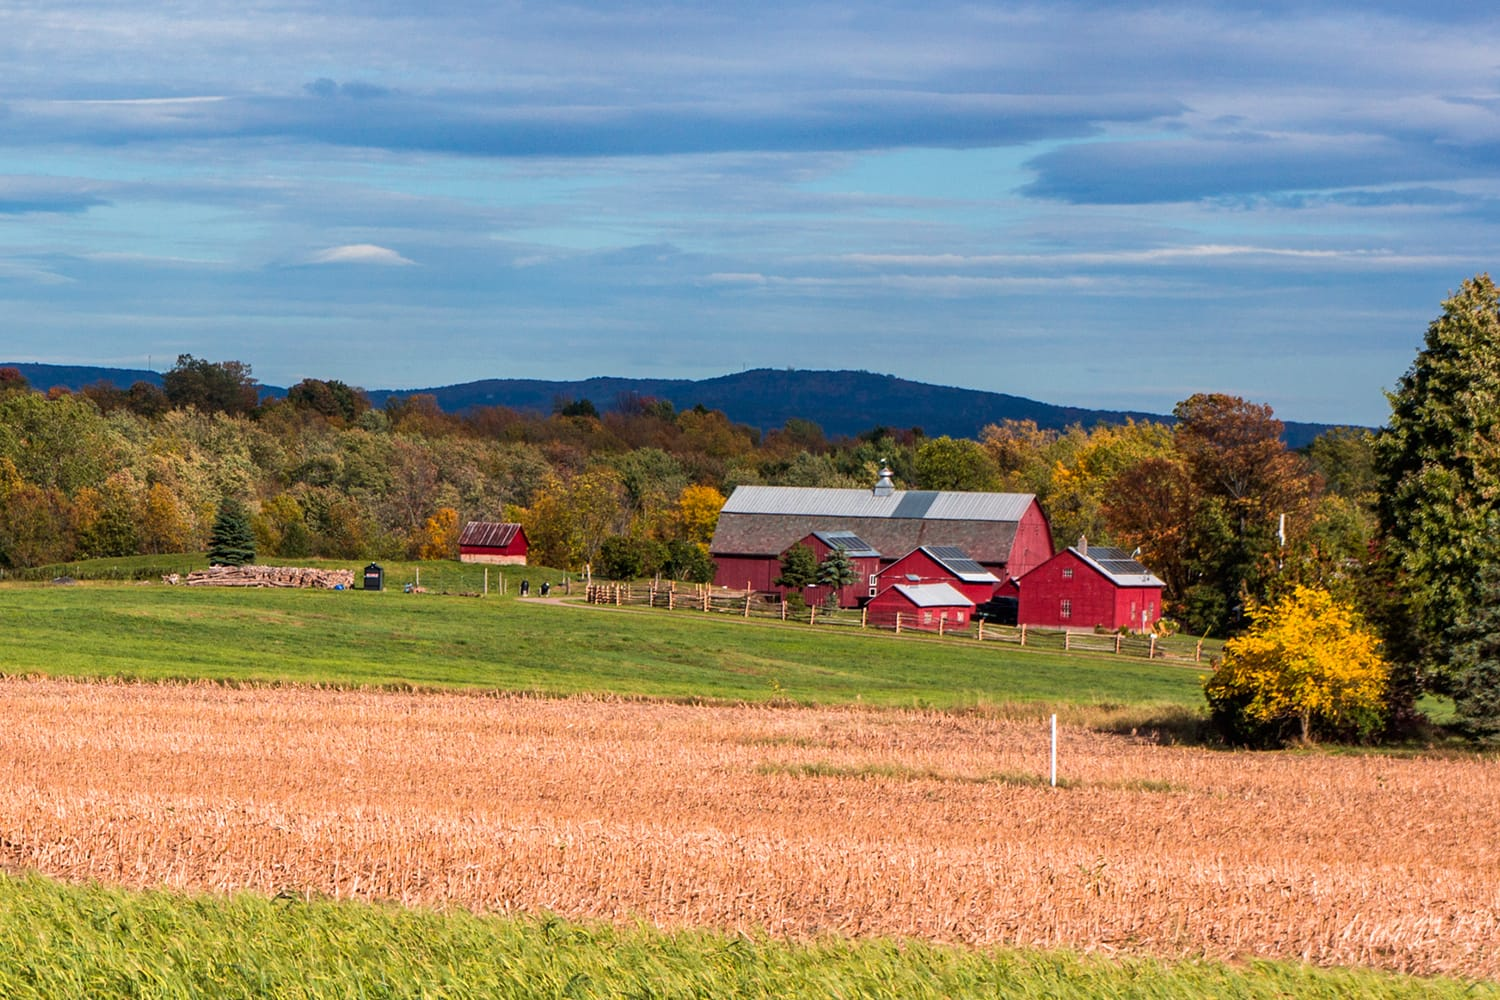 Farm on Grand Isle, one of the Lake Champlain Islands in Vermont, USA